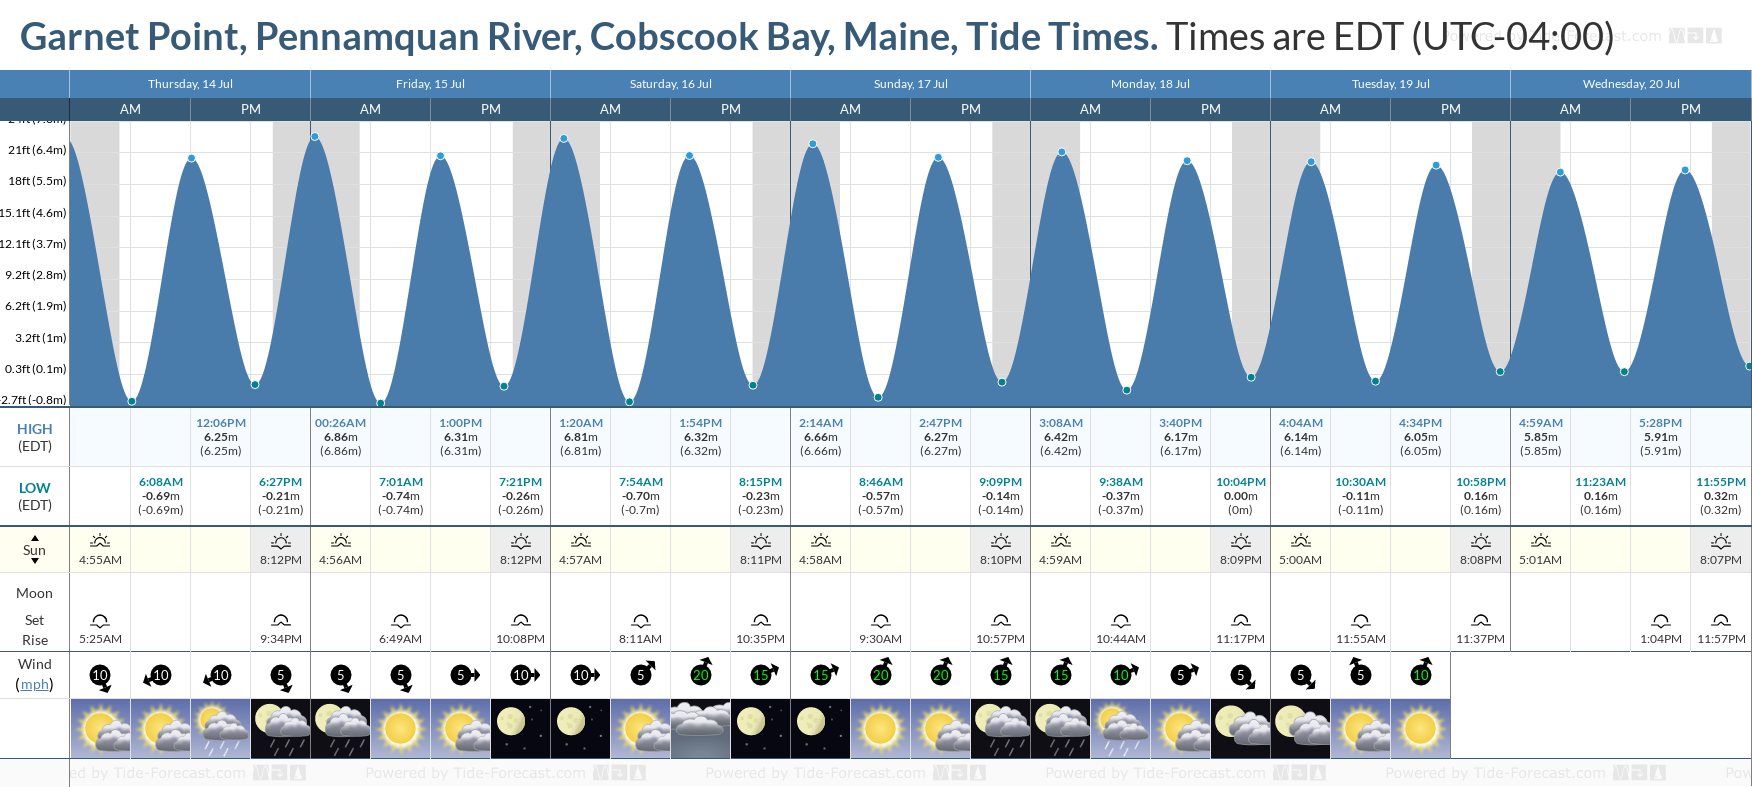 Garnet Point, Pennamquan River, Cobscook Bay, Maine Tide Chart including high and low tide tide times for the next 7 days